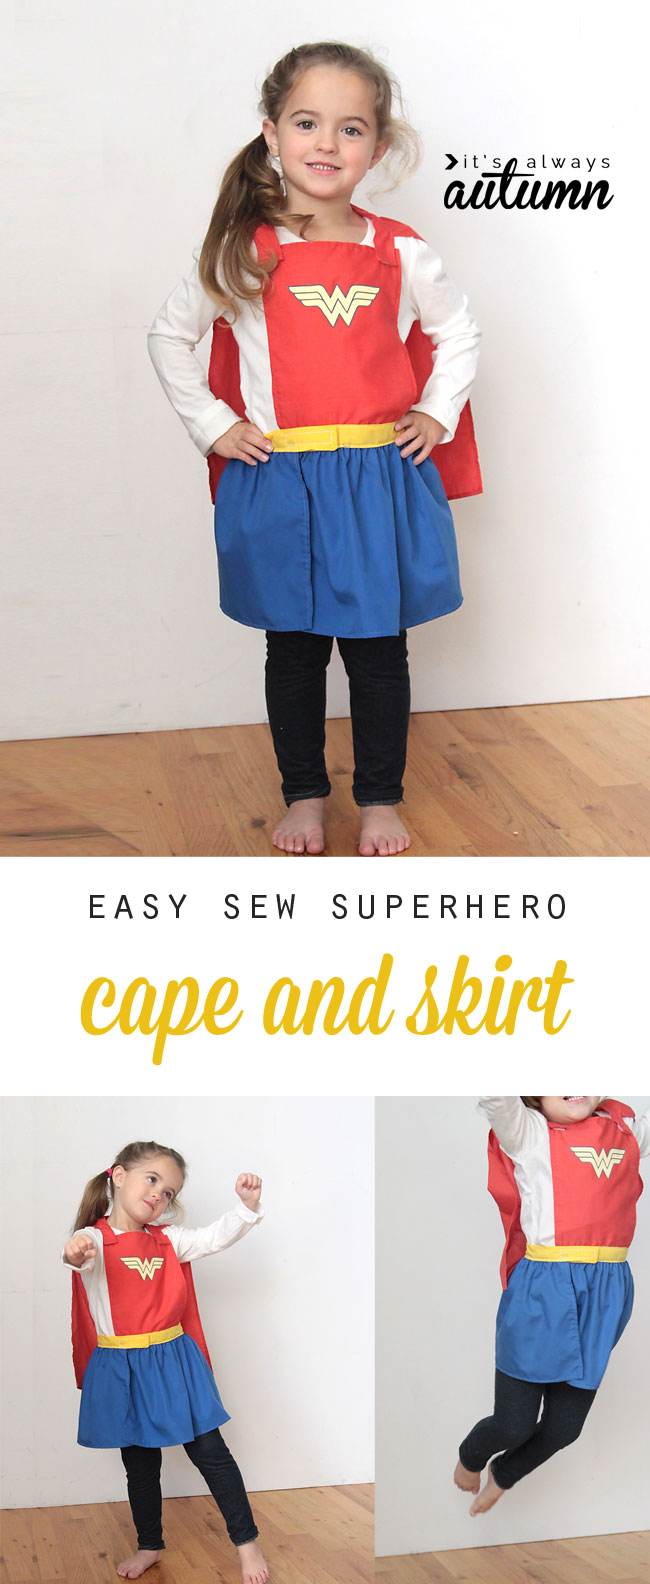 awesome superhero cape and skirt for girls! great gift to sew. free pattern & tutorial included in post!